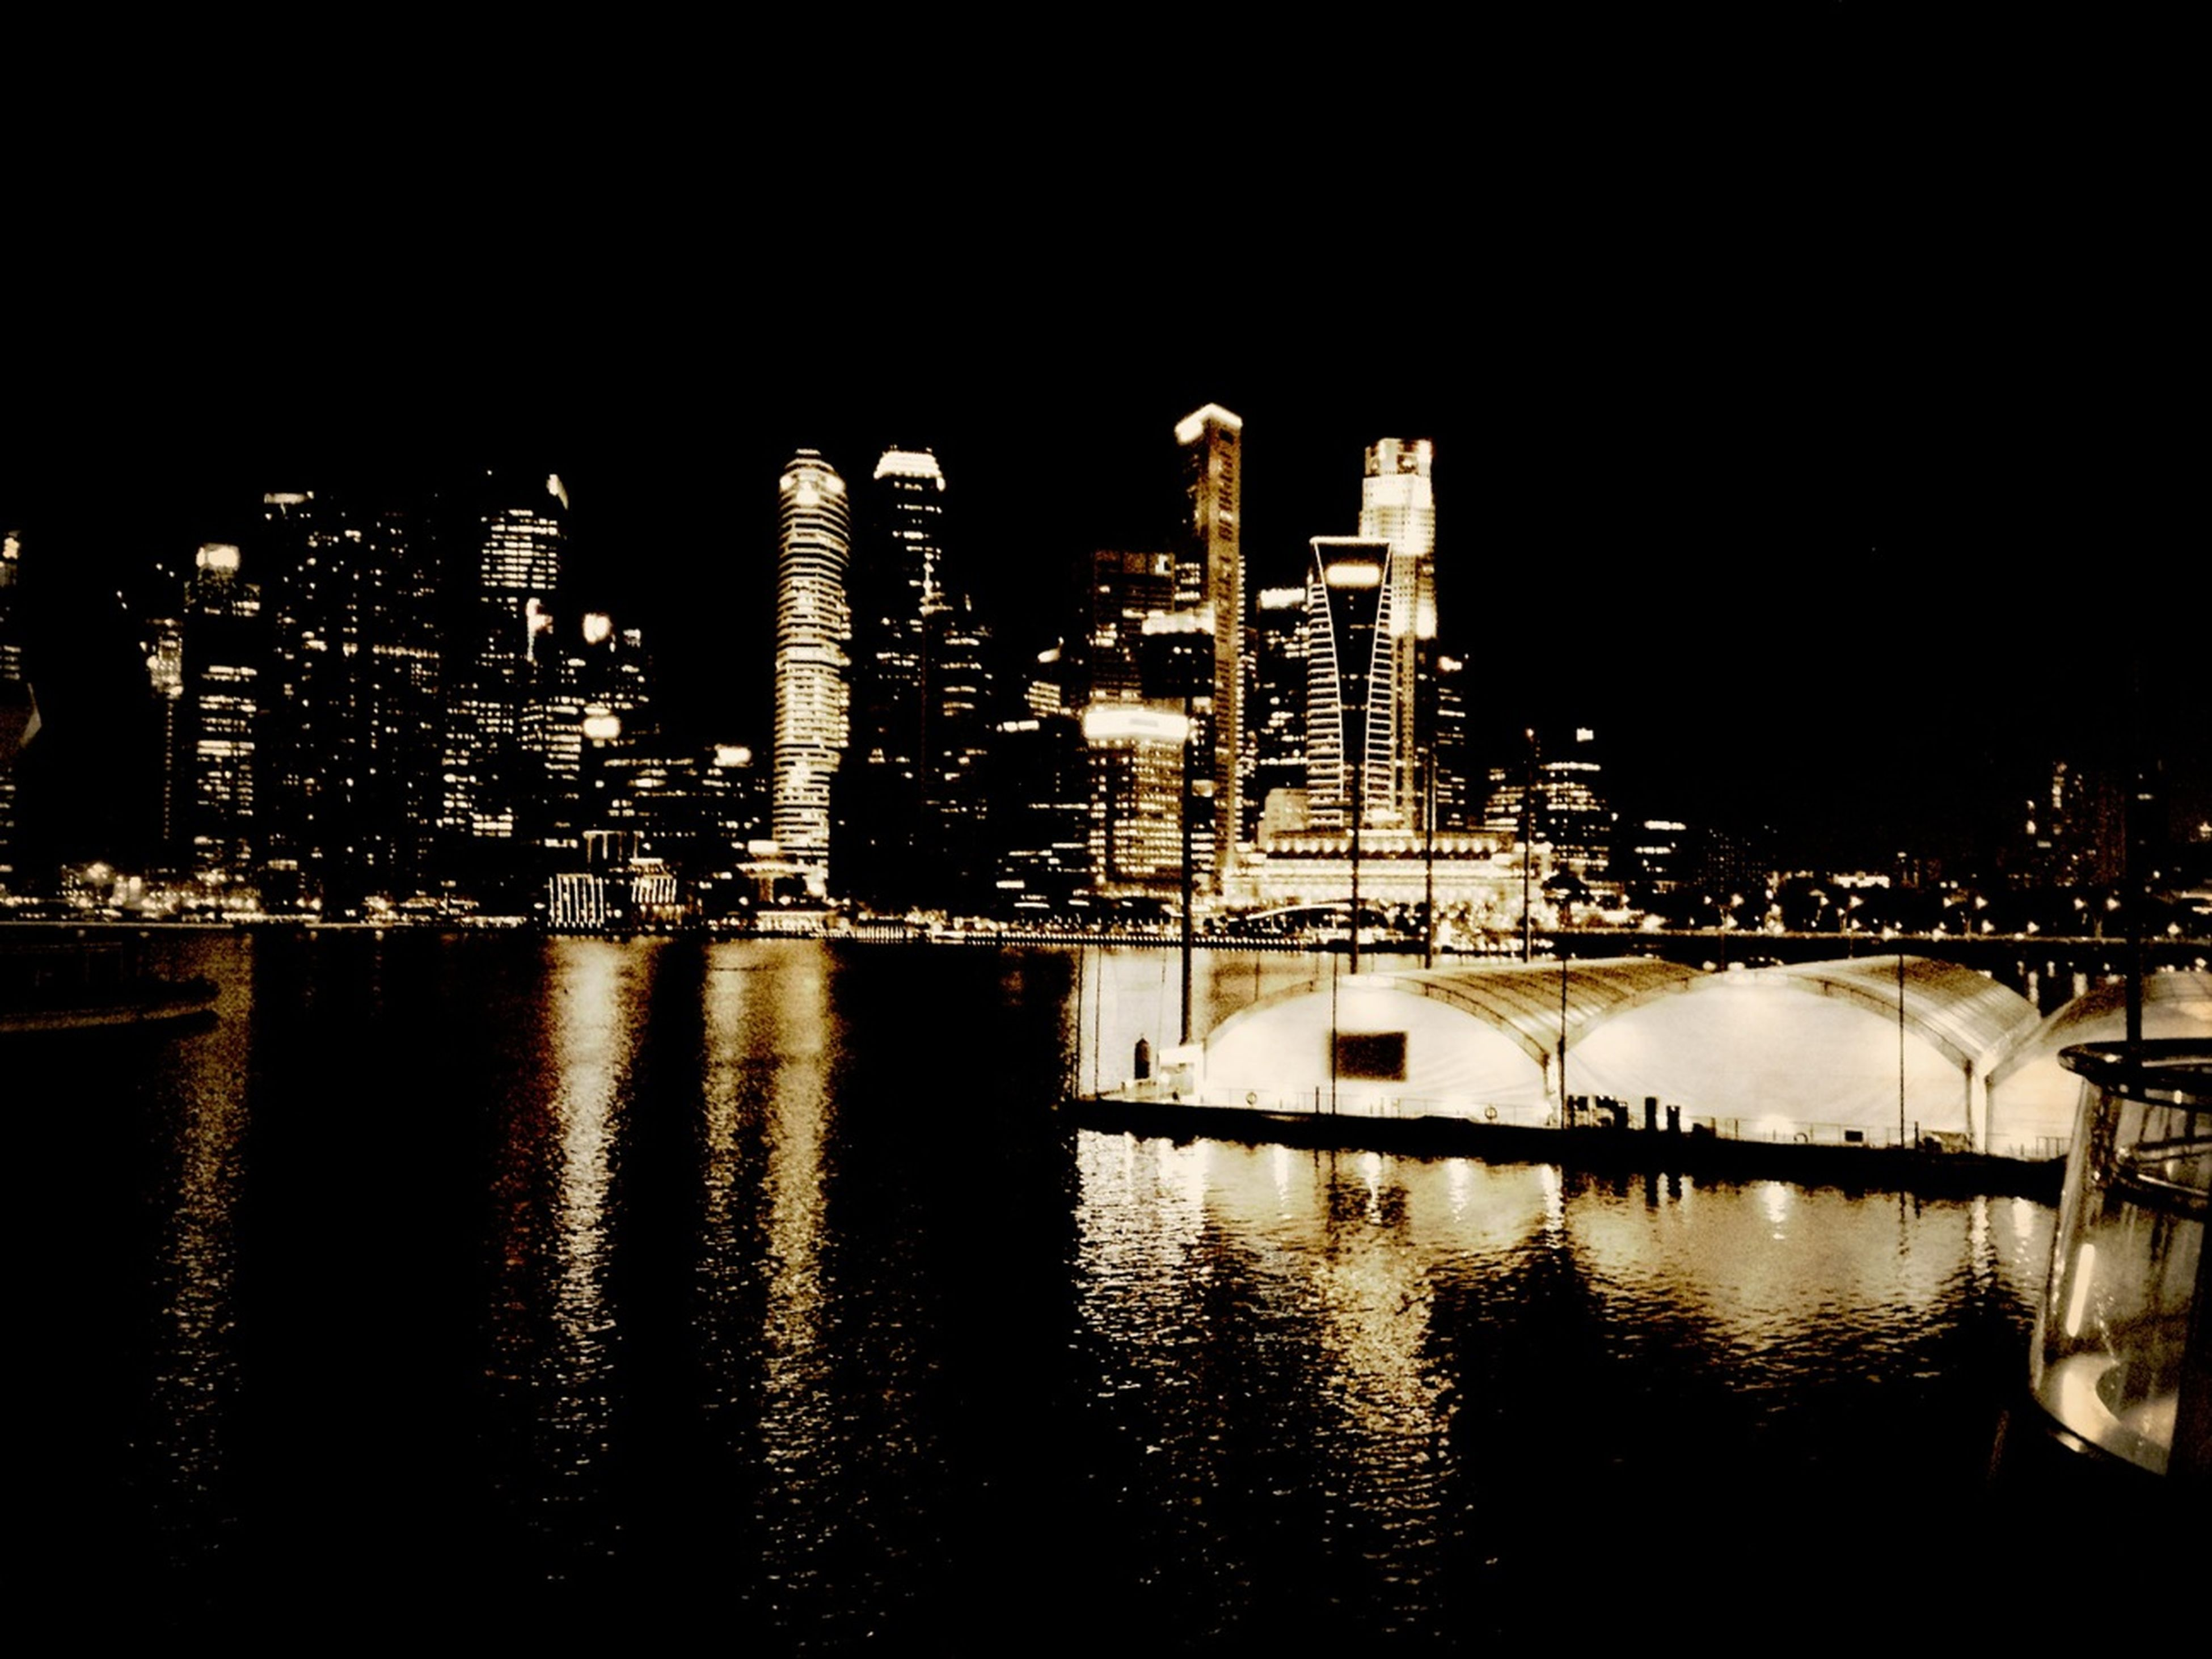 night, illuminated, water, architecture, city, building exterior, waterfront, built structure, reflection, river, cityscape, skyscraper, clear sky, modern, sea, copy space, urban skyline, no people, tower, sky